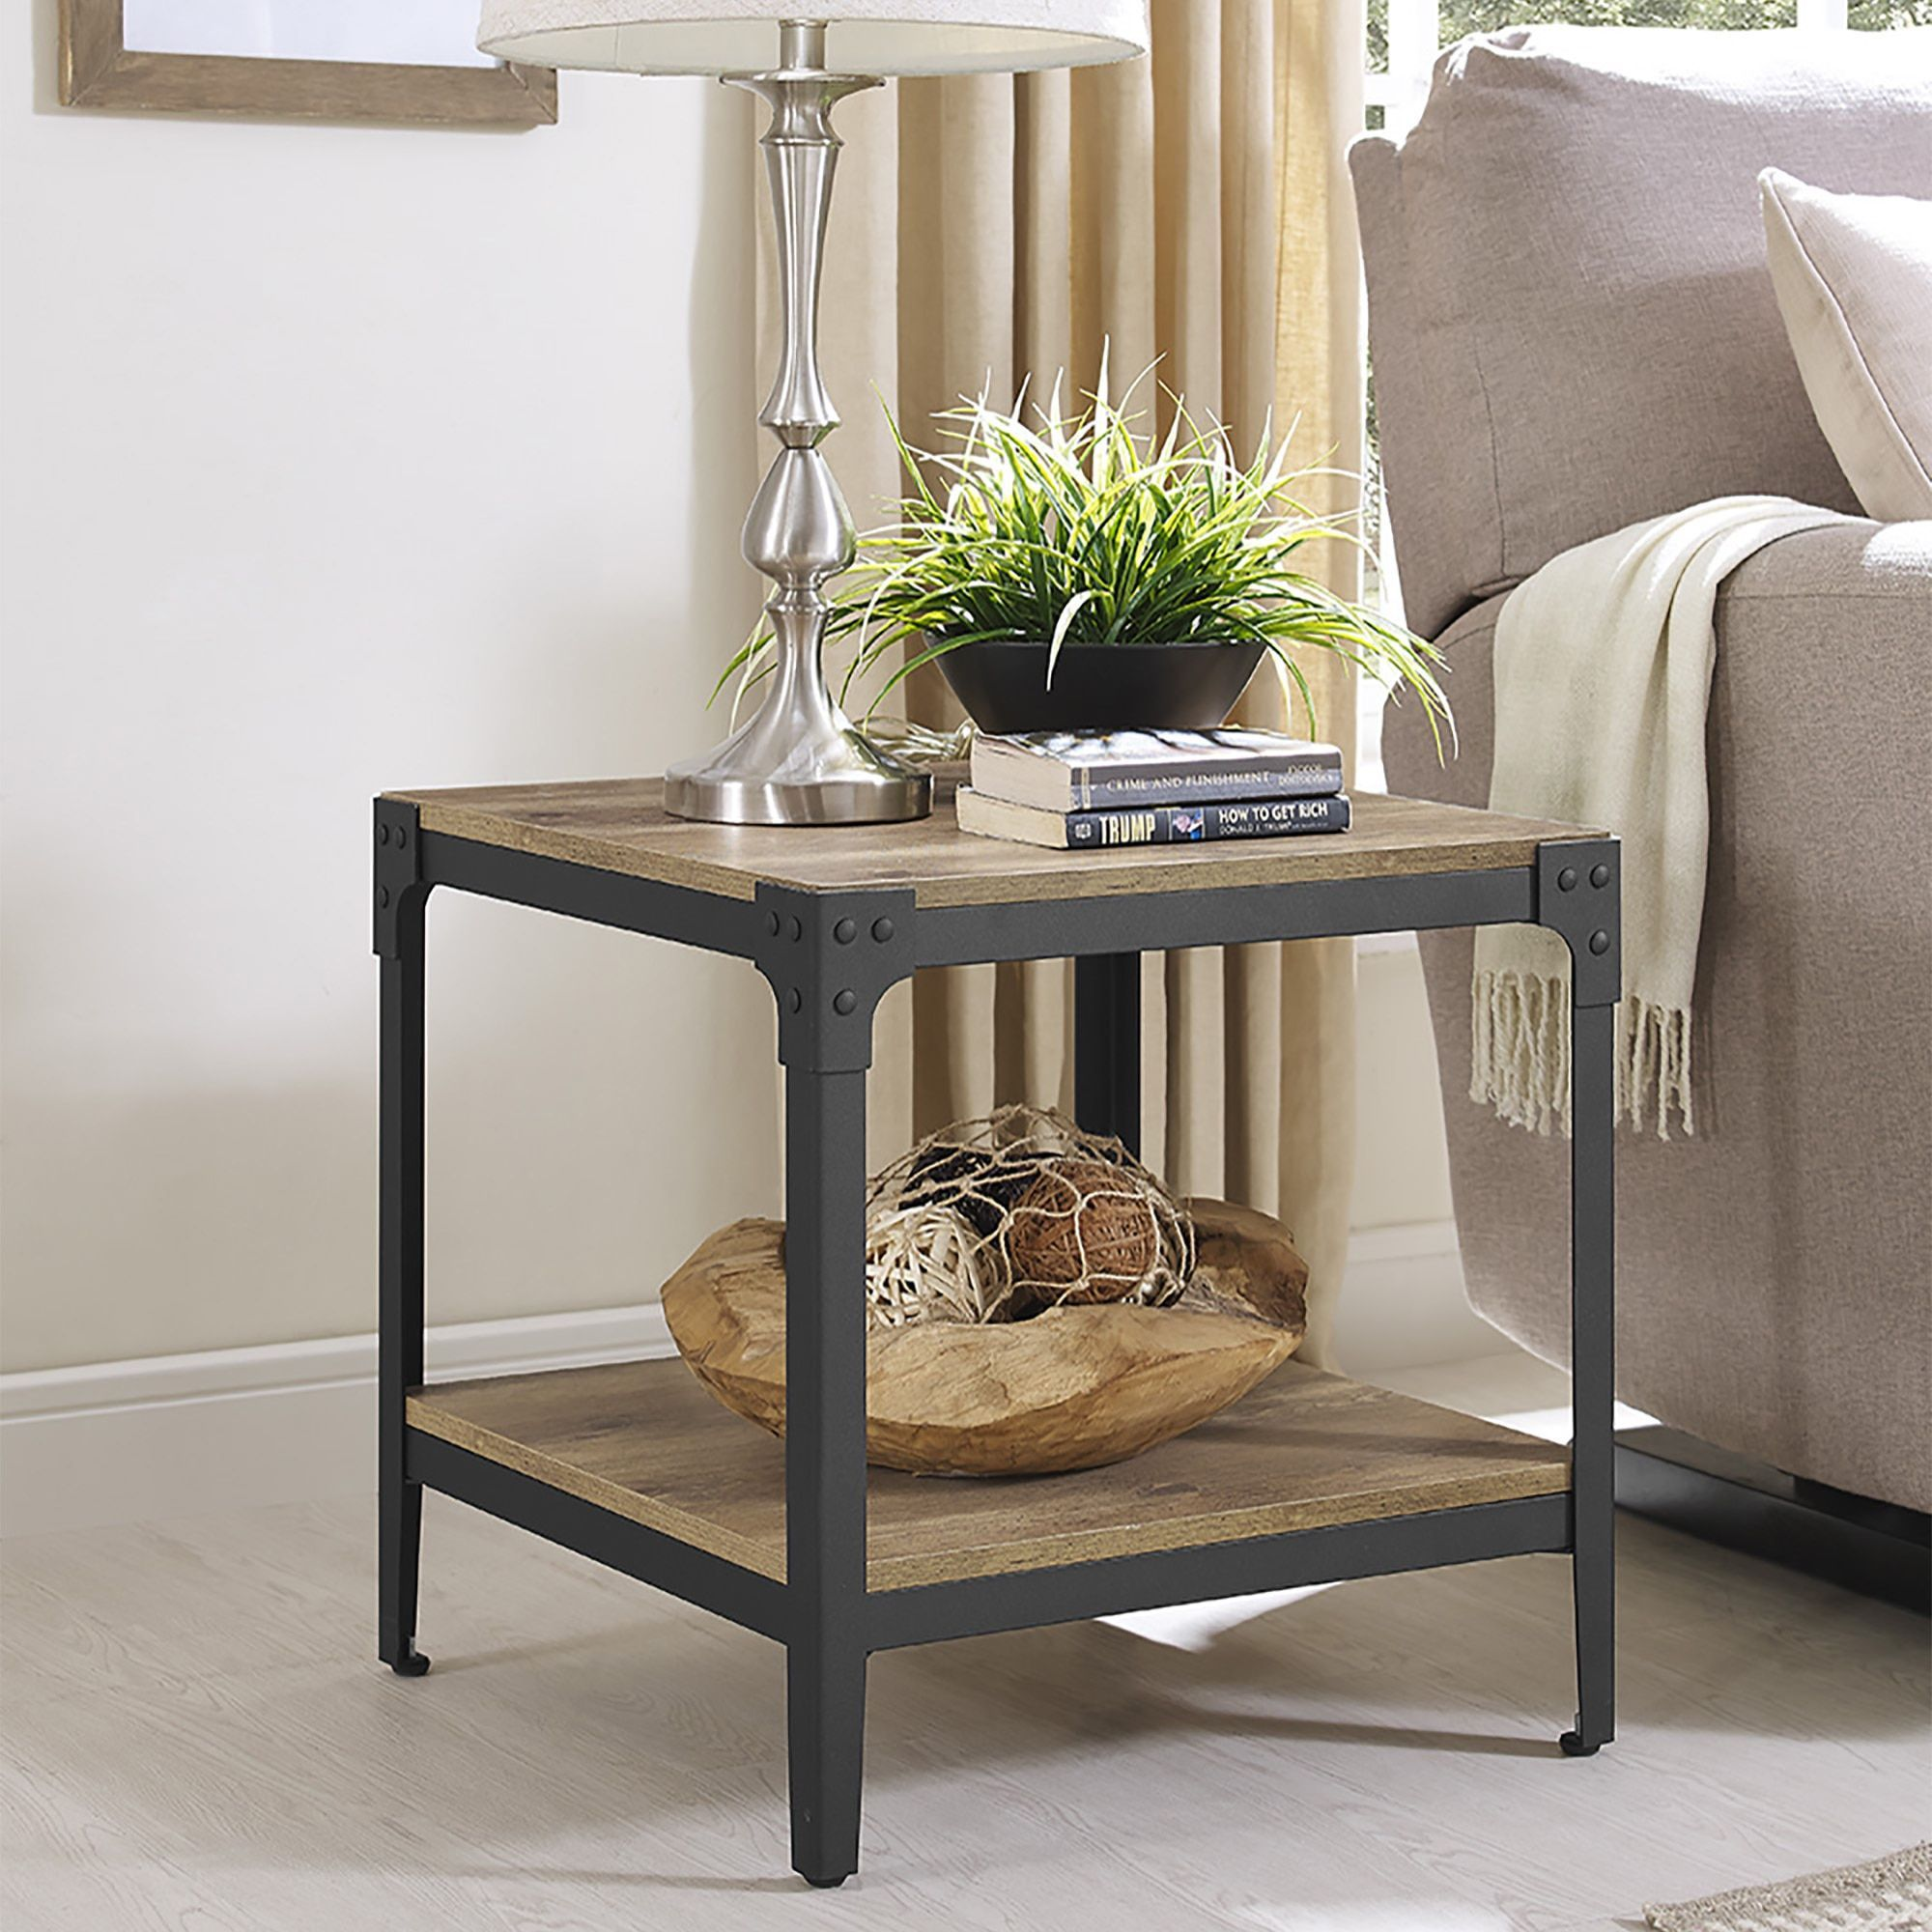 Online Shopping Bedding Furniture Electronics Jewelry Clothing More End Tables Rustic End Tables Wood End Tables